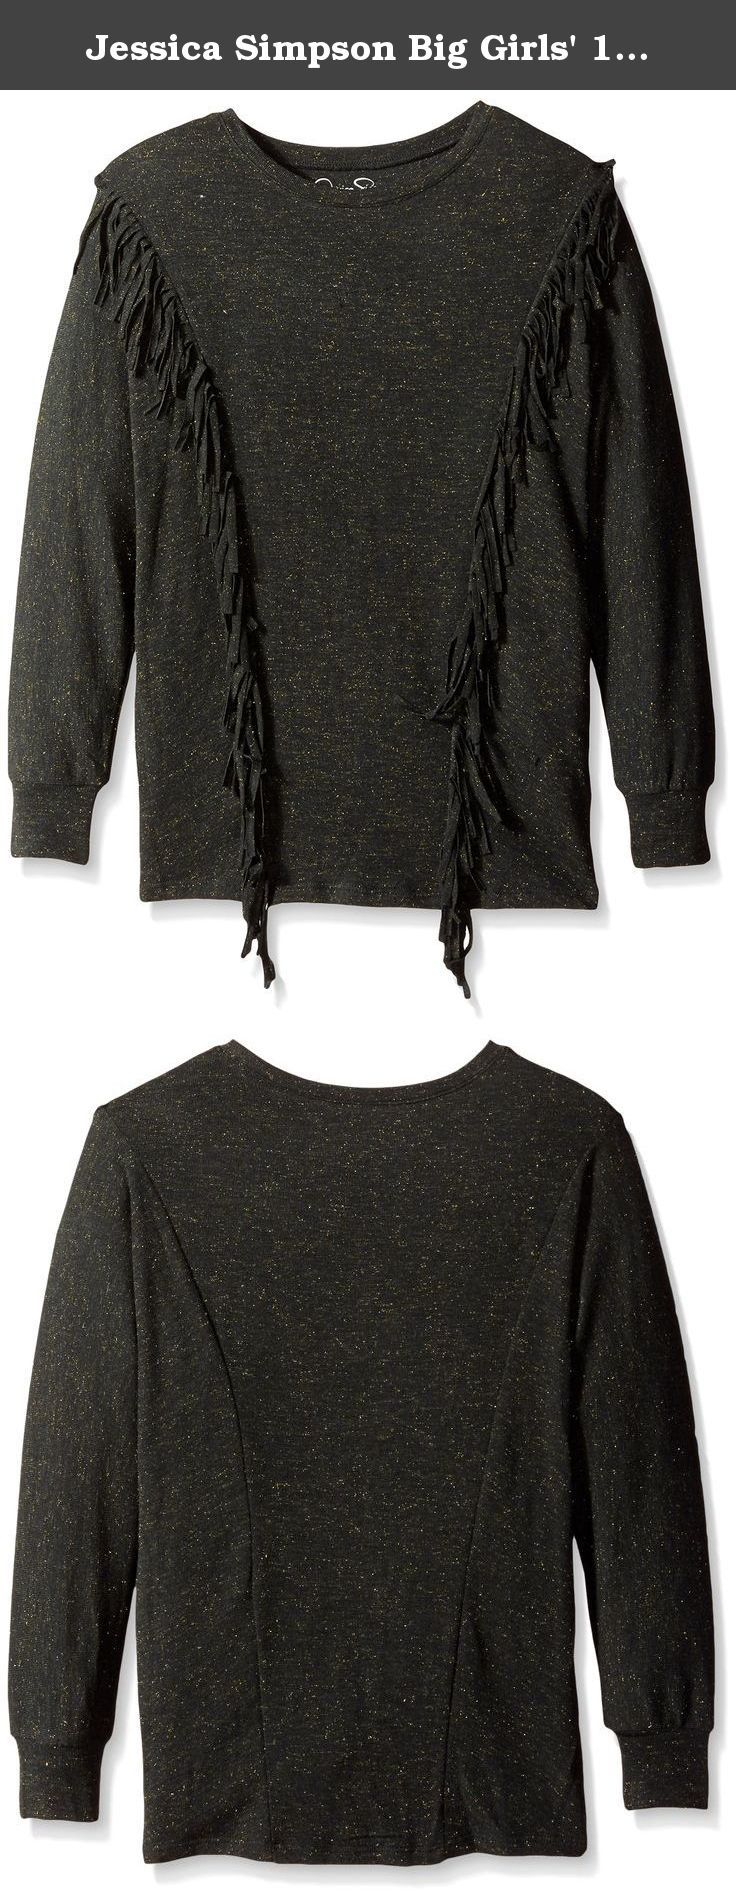 Jessica Simpson Big Girls' 10Th Ann Katie Ls Top Girls 6P- Black, Medium. Part of the Jessica Simpson 10th anniversary collection this pullover sweatshirt features fringe detail with an oversized body.